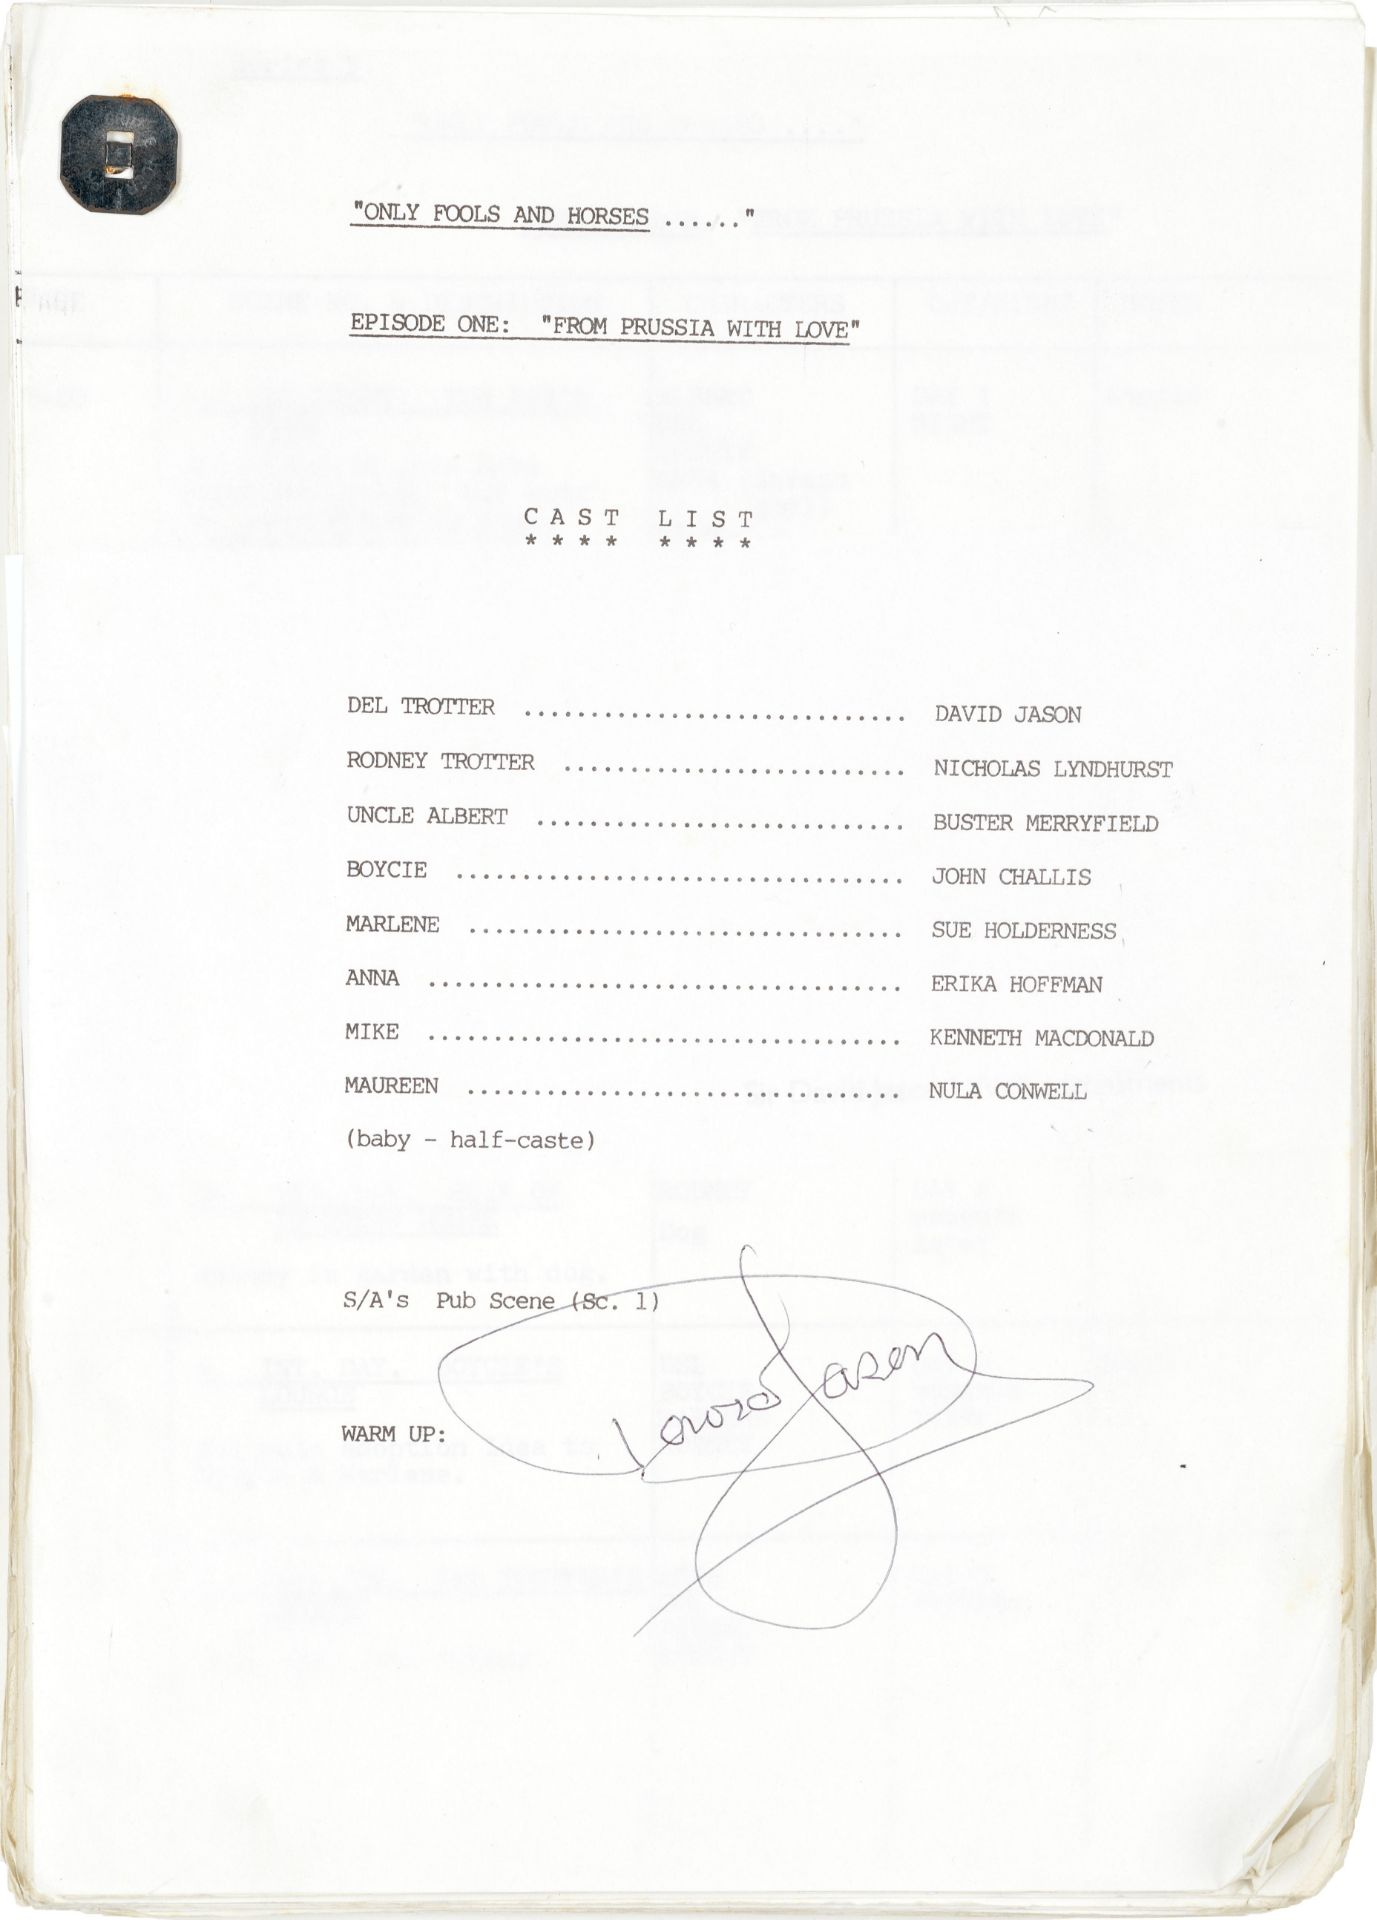 Only Fools And Horses: An original working script signed and annotated by David Jason, BBC, 1968,